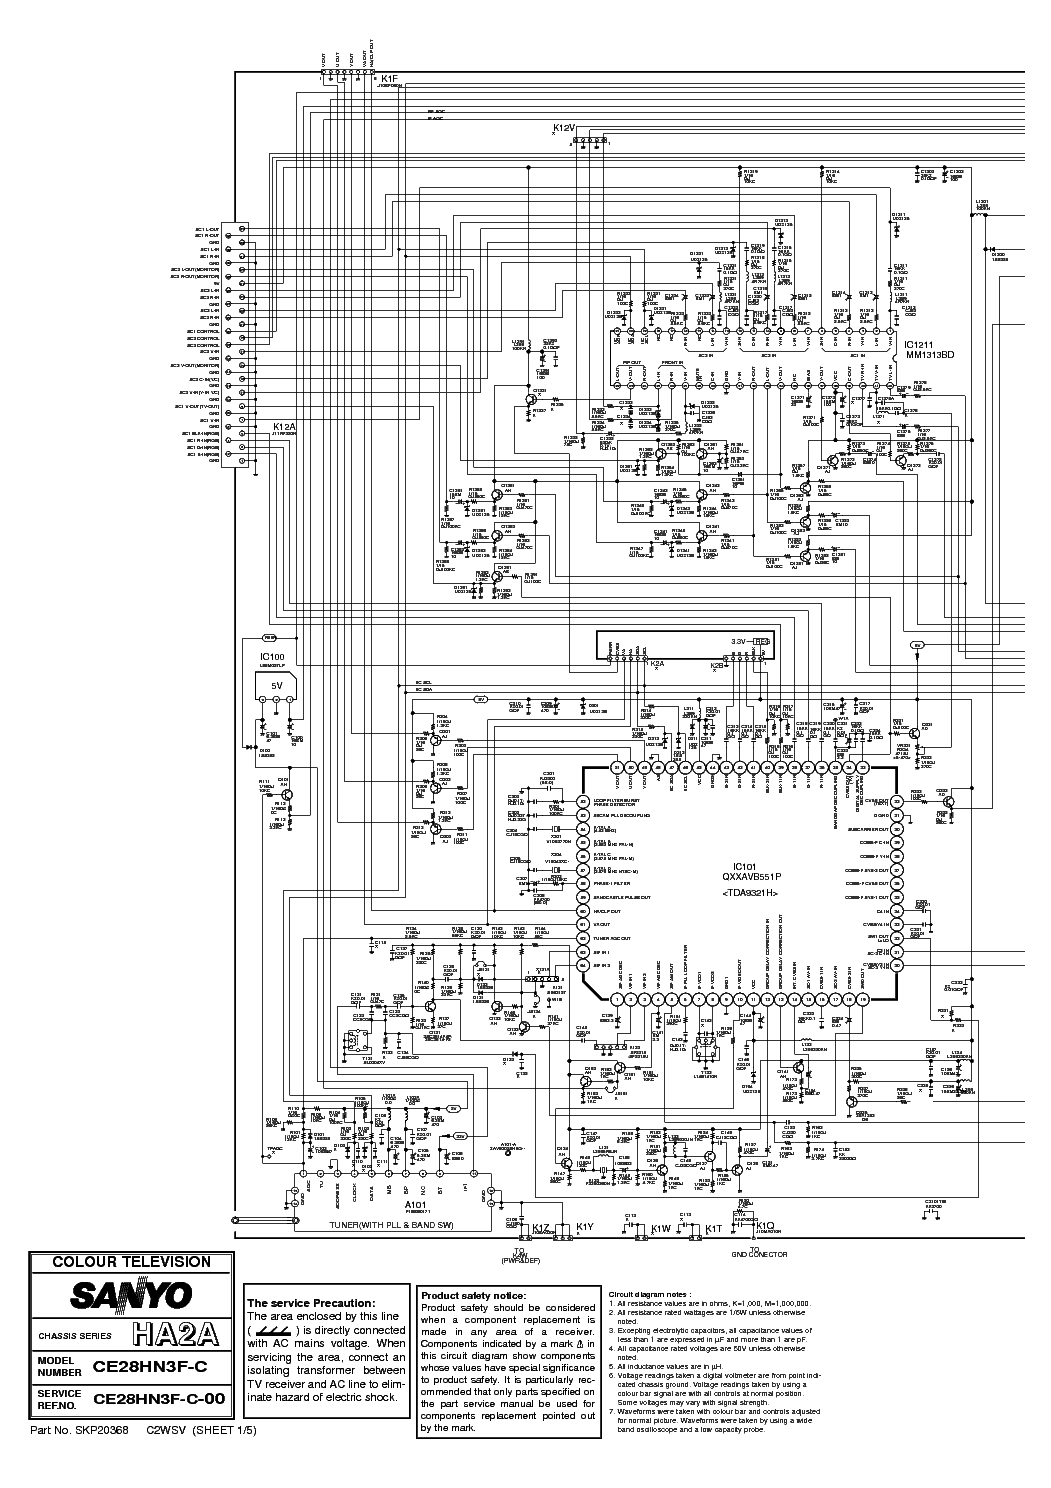 SANYO 2021 CHASSIS Service Manual download, schematics